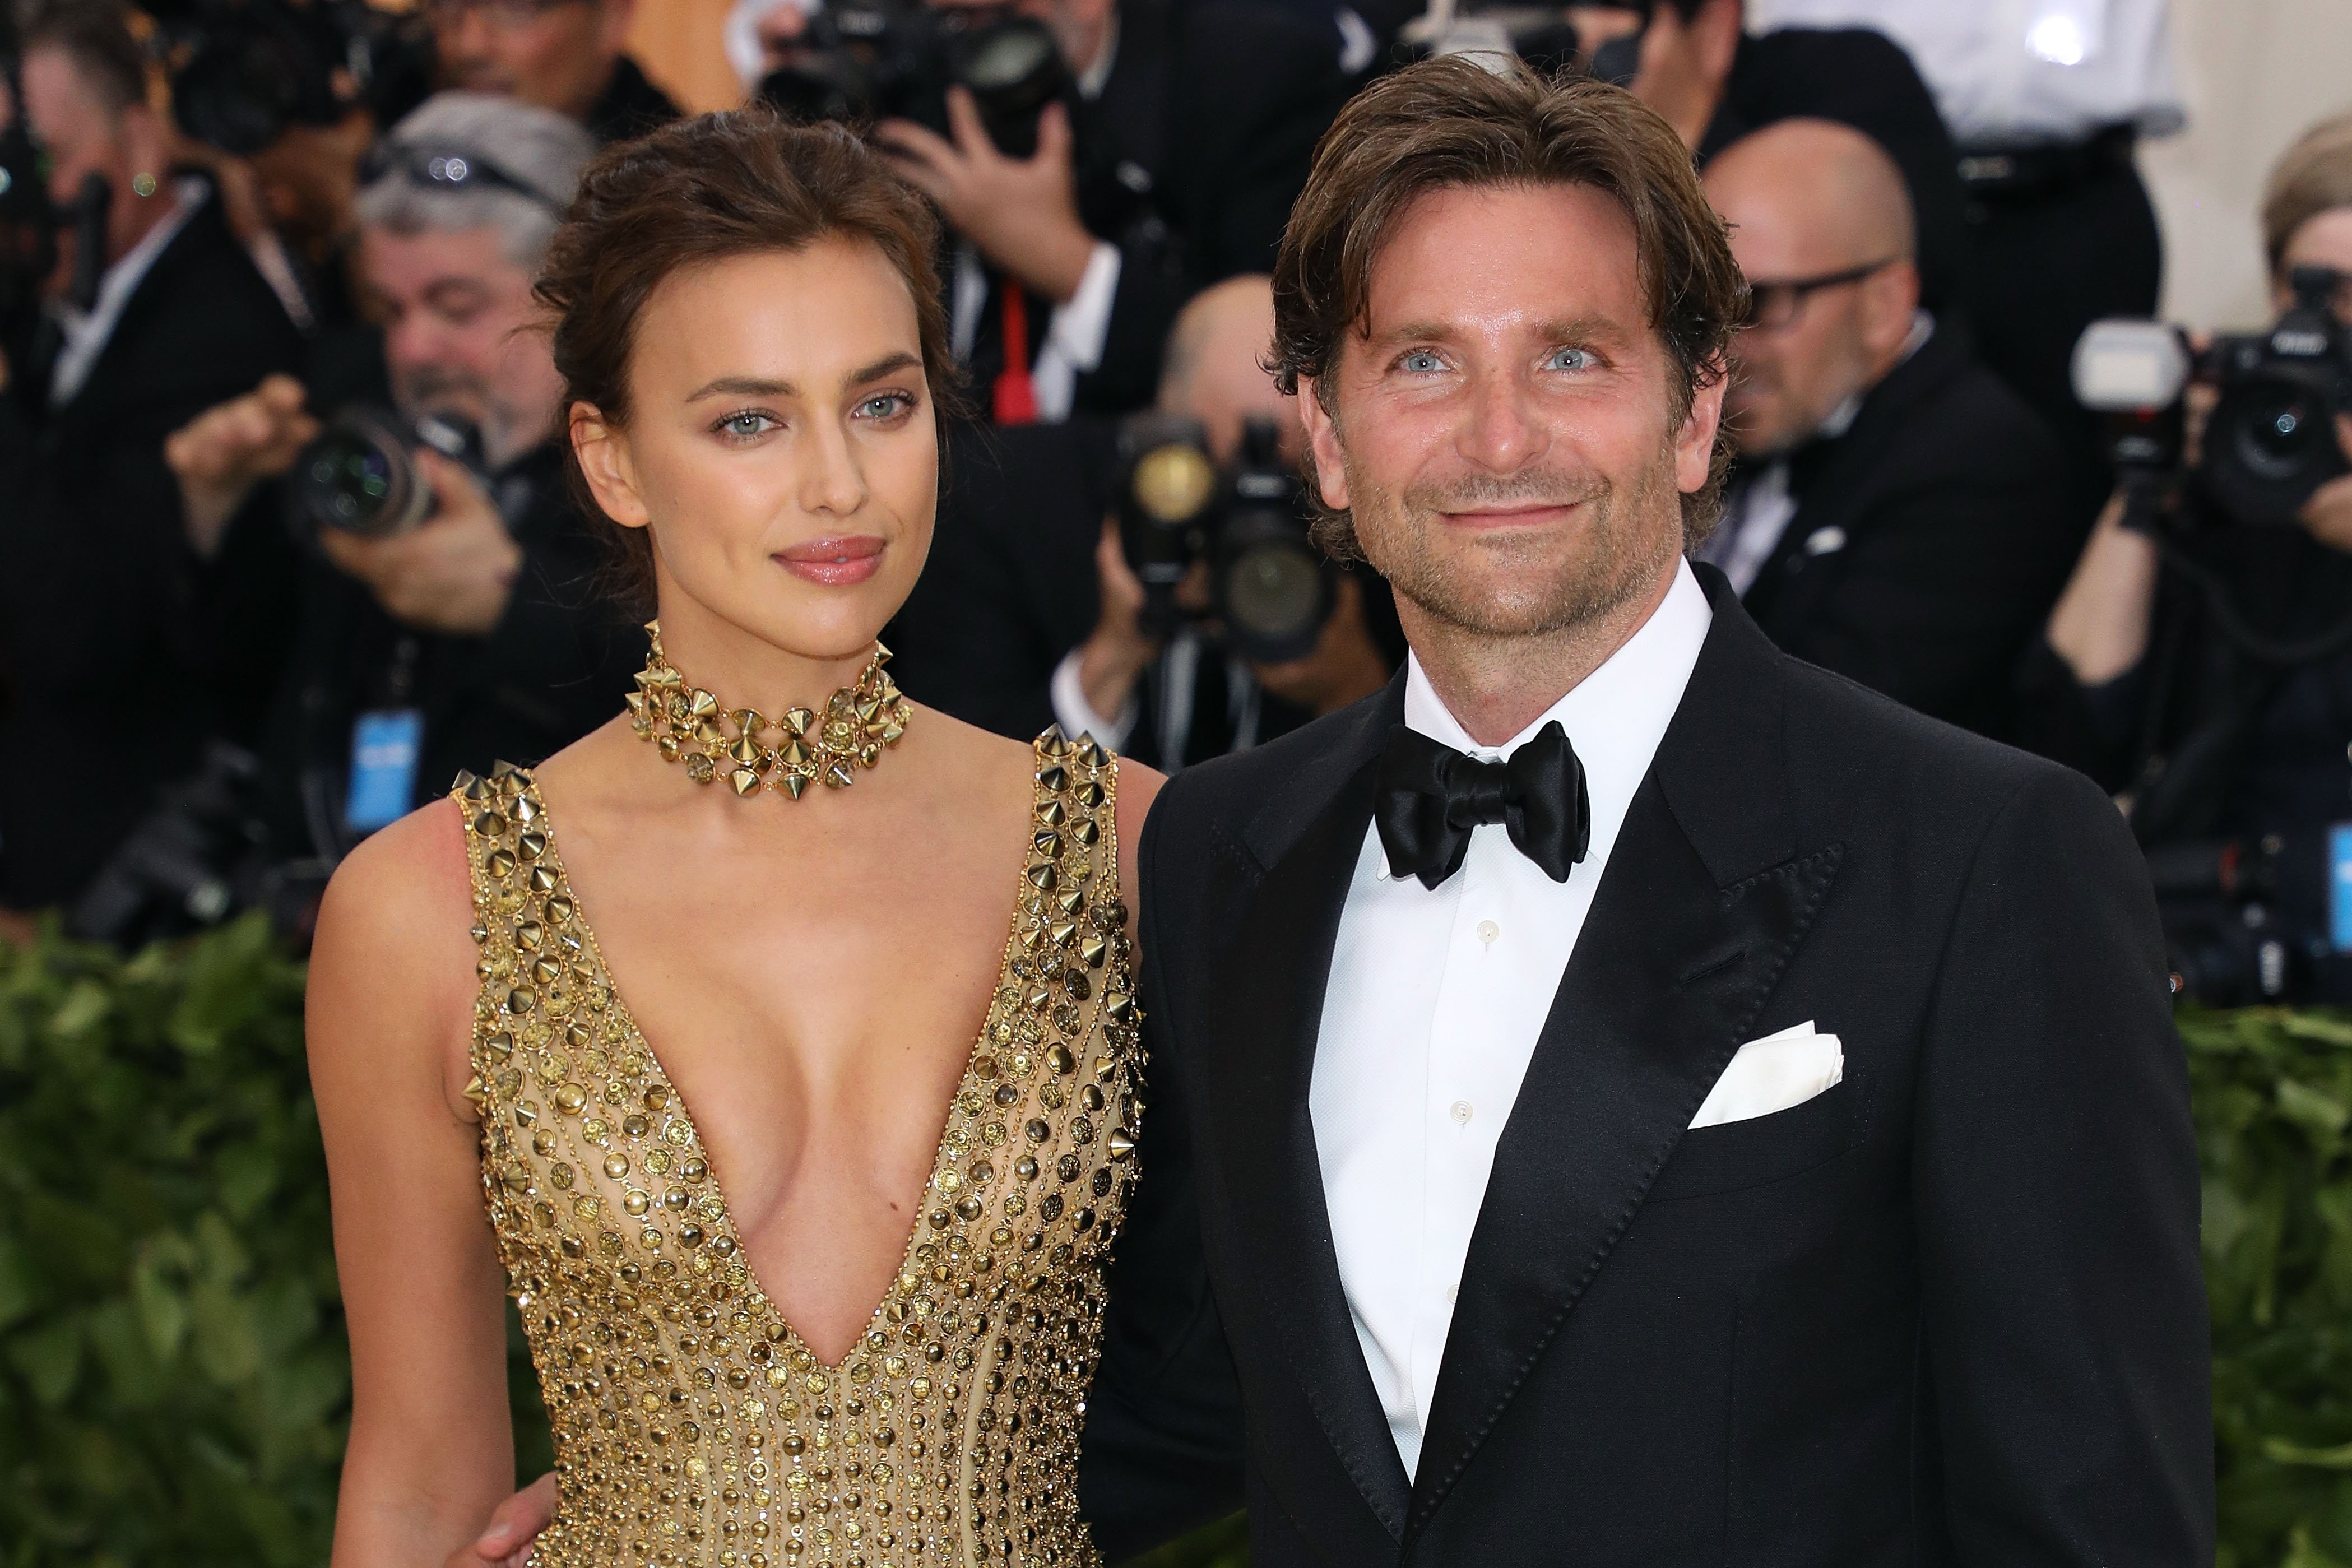 Irina Shayk and Bradley Cooper on May 7, 2018 in New York City   Source: Getty Images